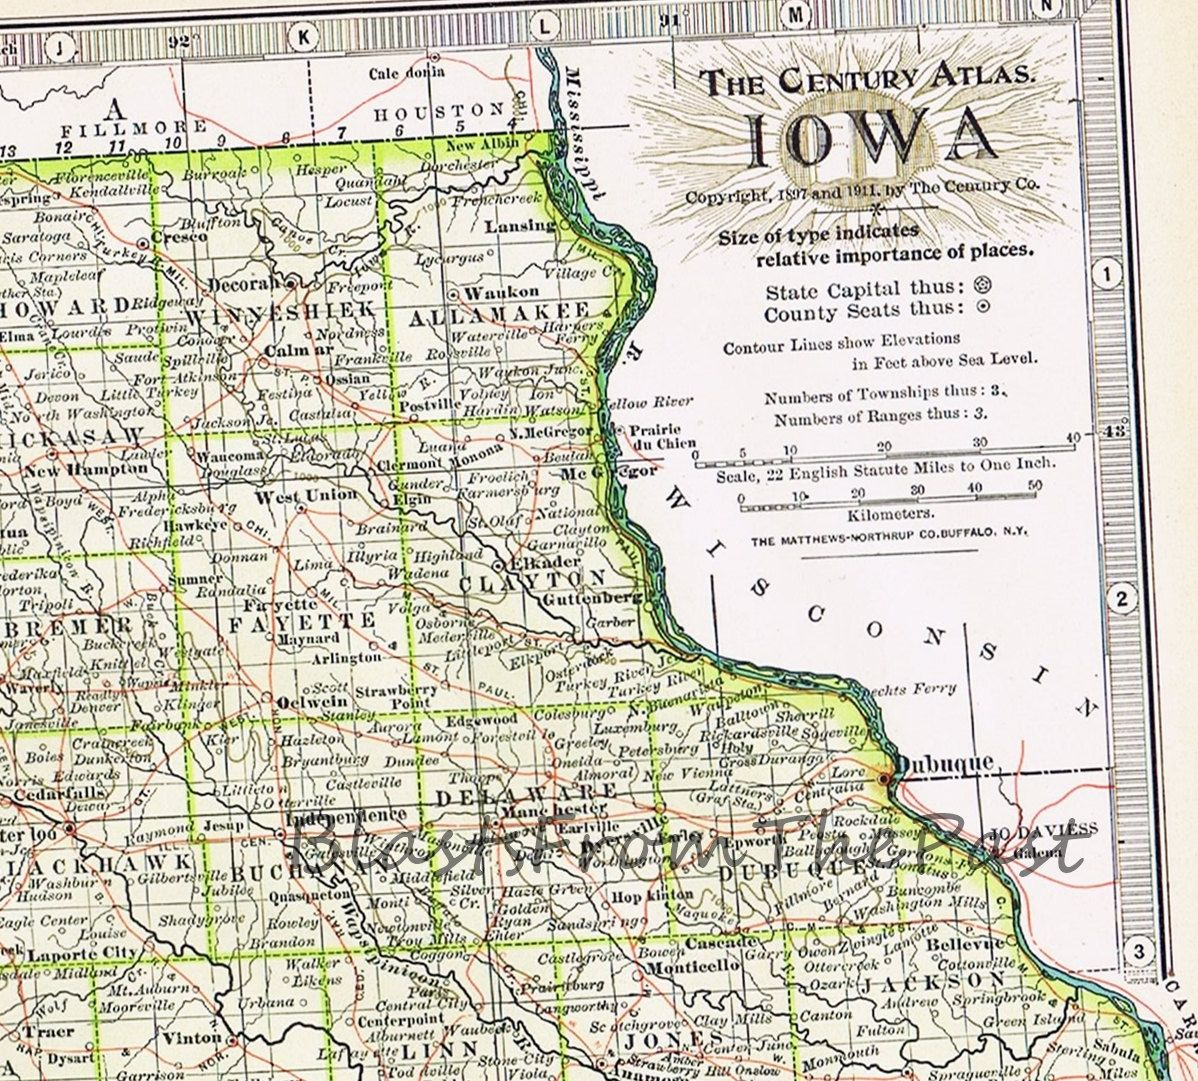 1911 Antique MAP of IOWA Authentic Large Scale Century Atlas IA